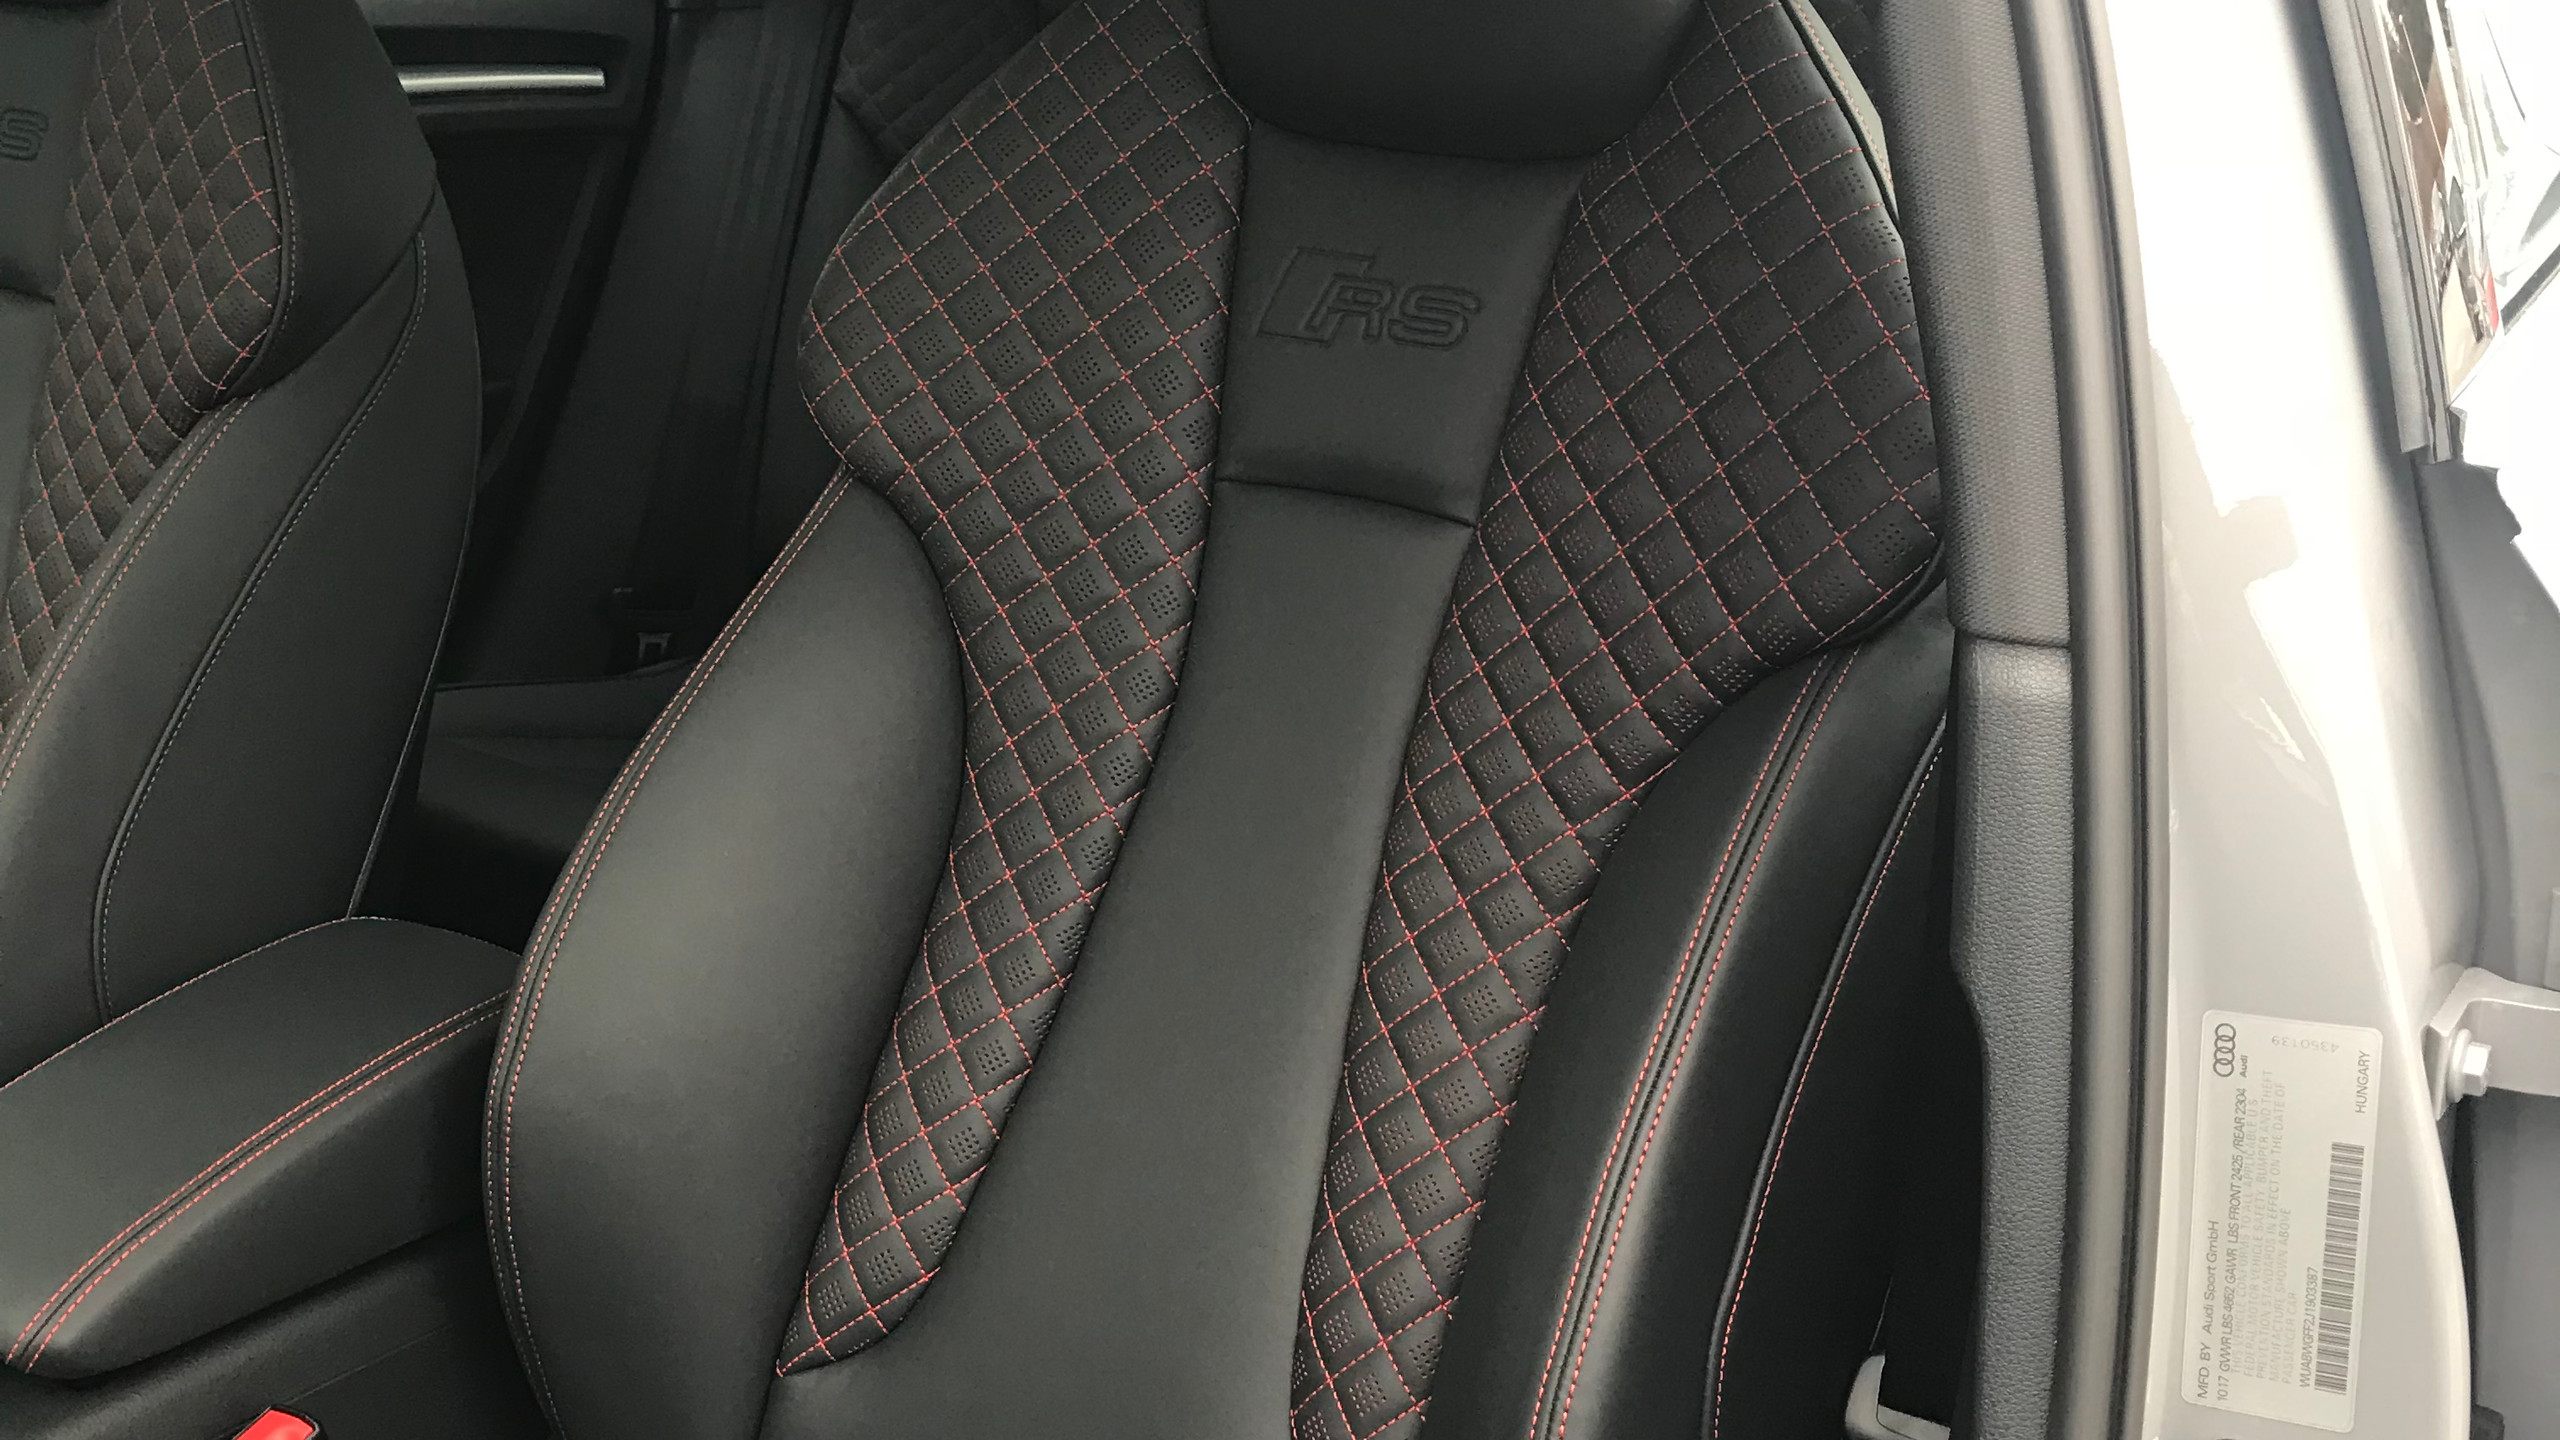 RS3 seat